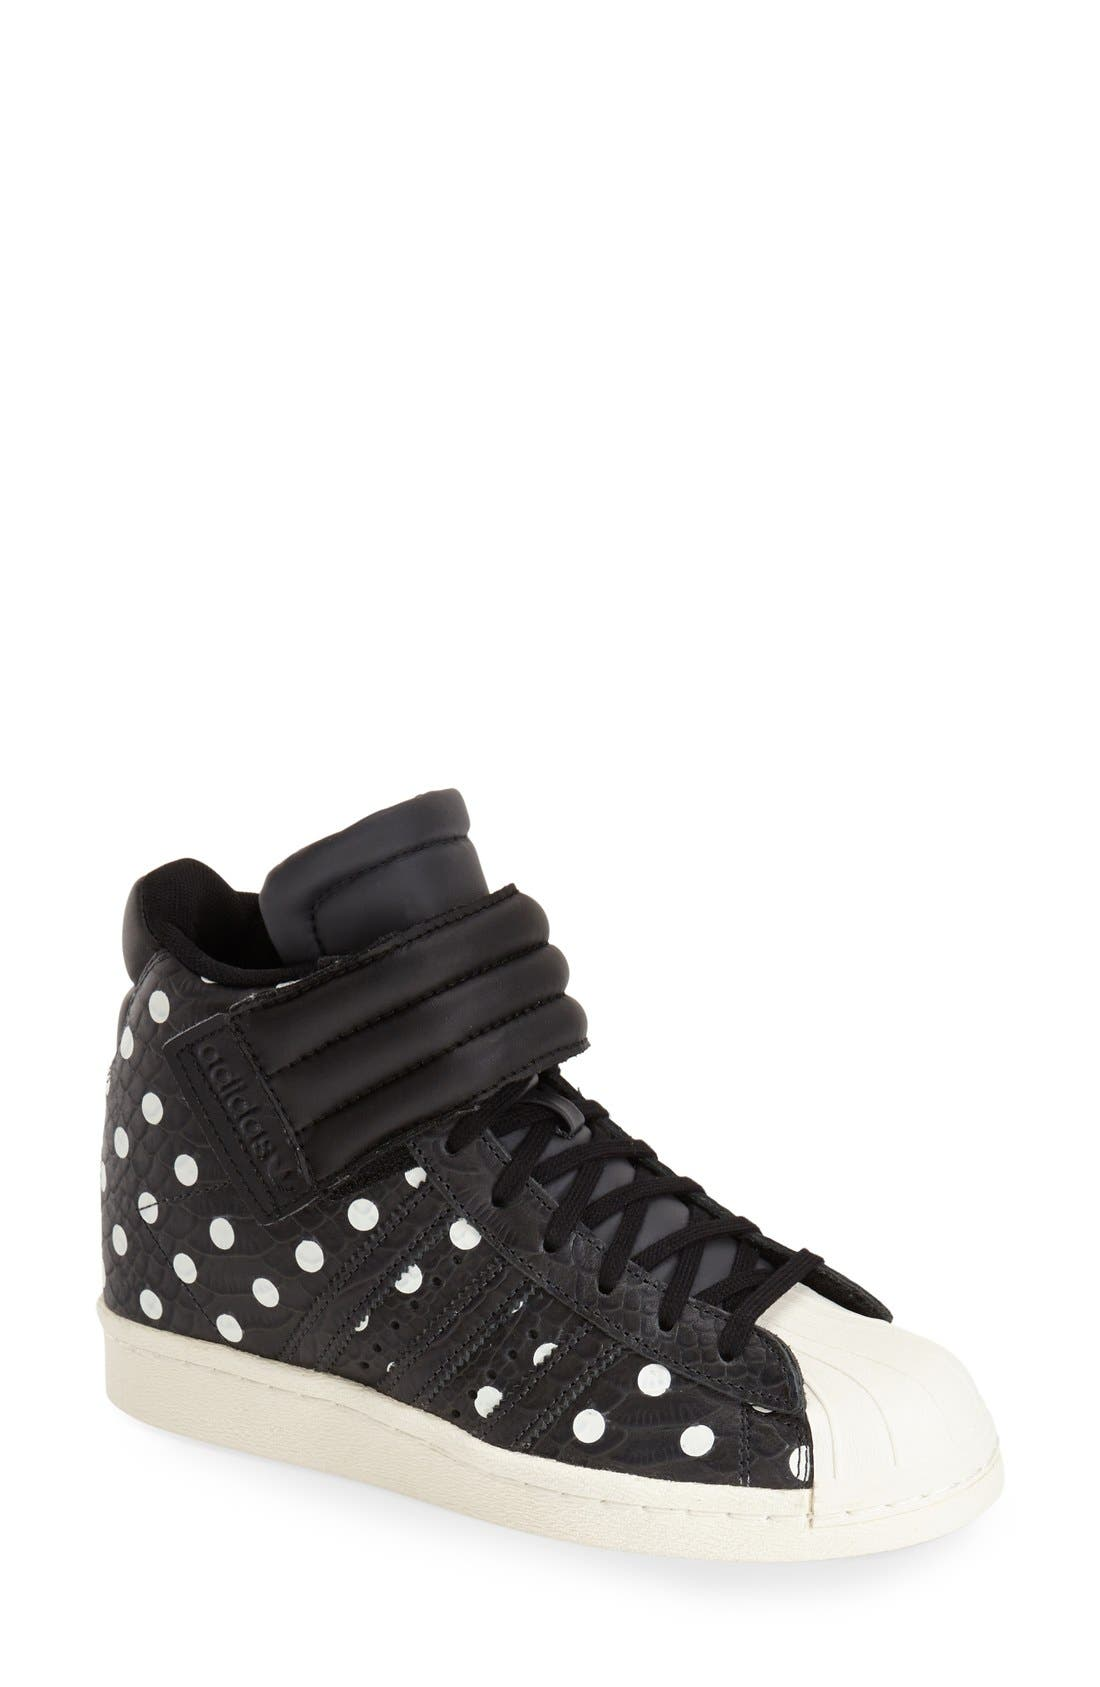 Alternate Image 1 Selected - adidas 'Superstar Up Strap' Hidden Wedge Sneaker (Women)